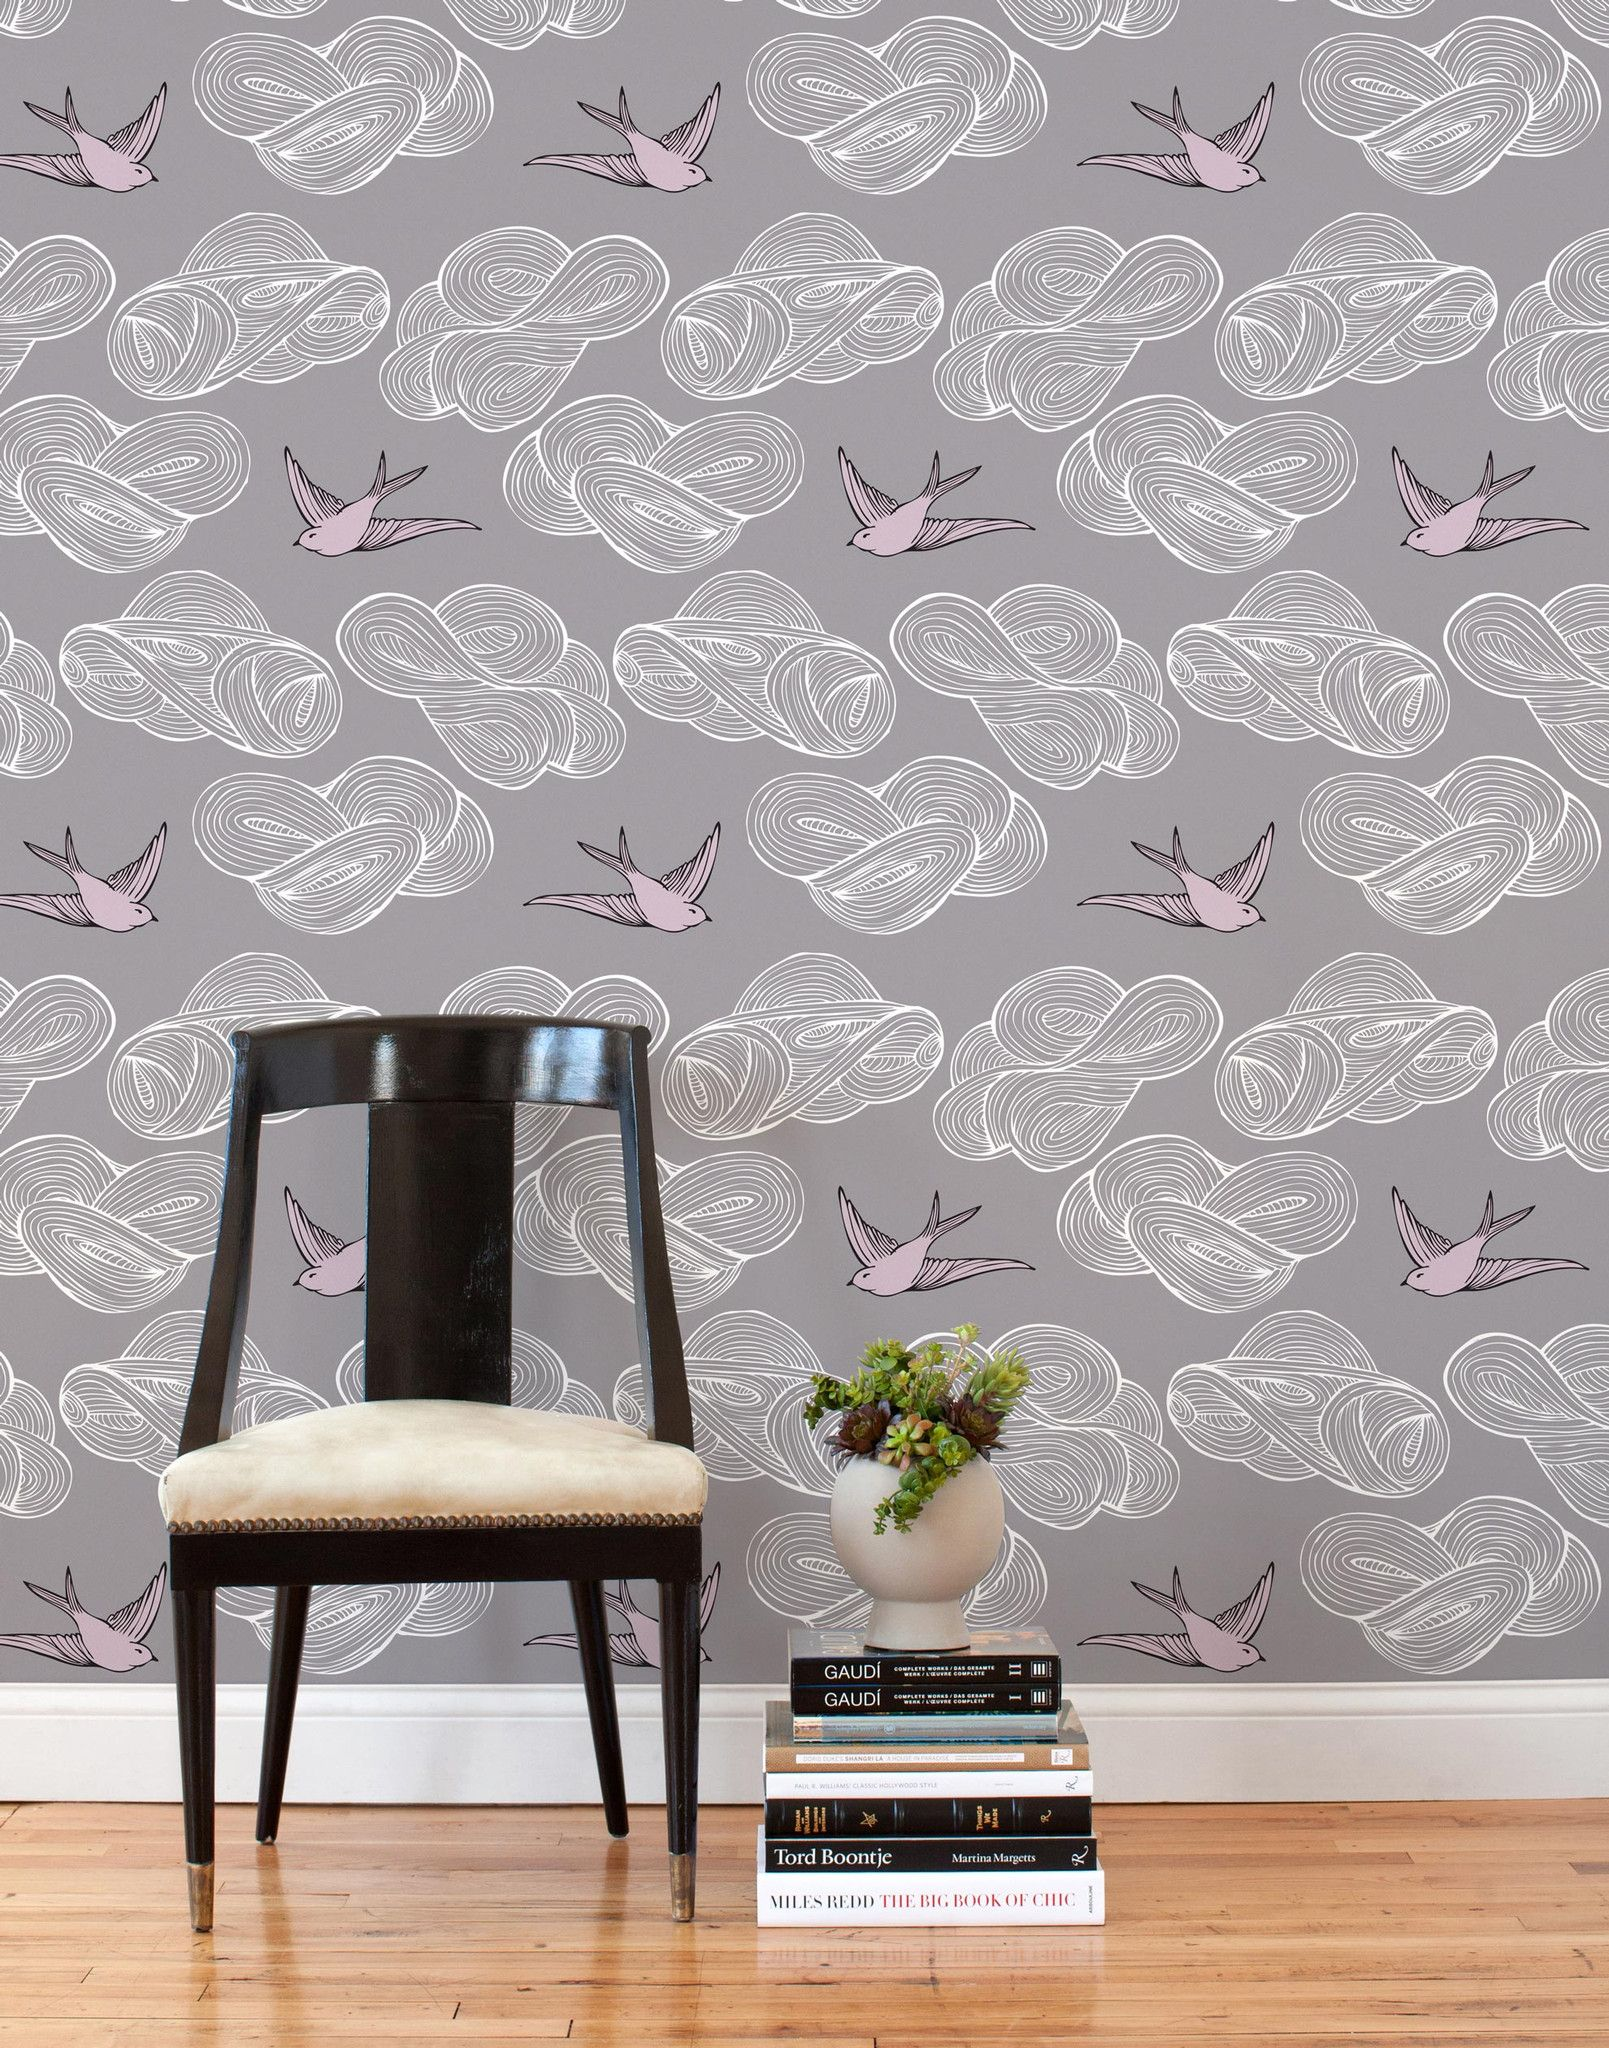 Daydream (Lavender) Tiles $58 For 2 24X36 Tiles With Low